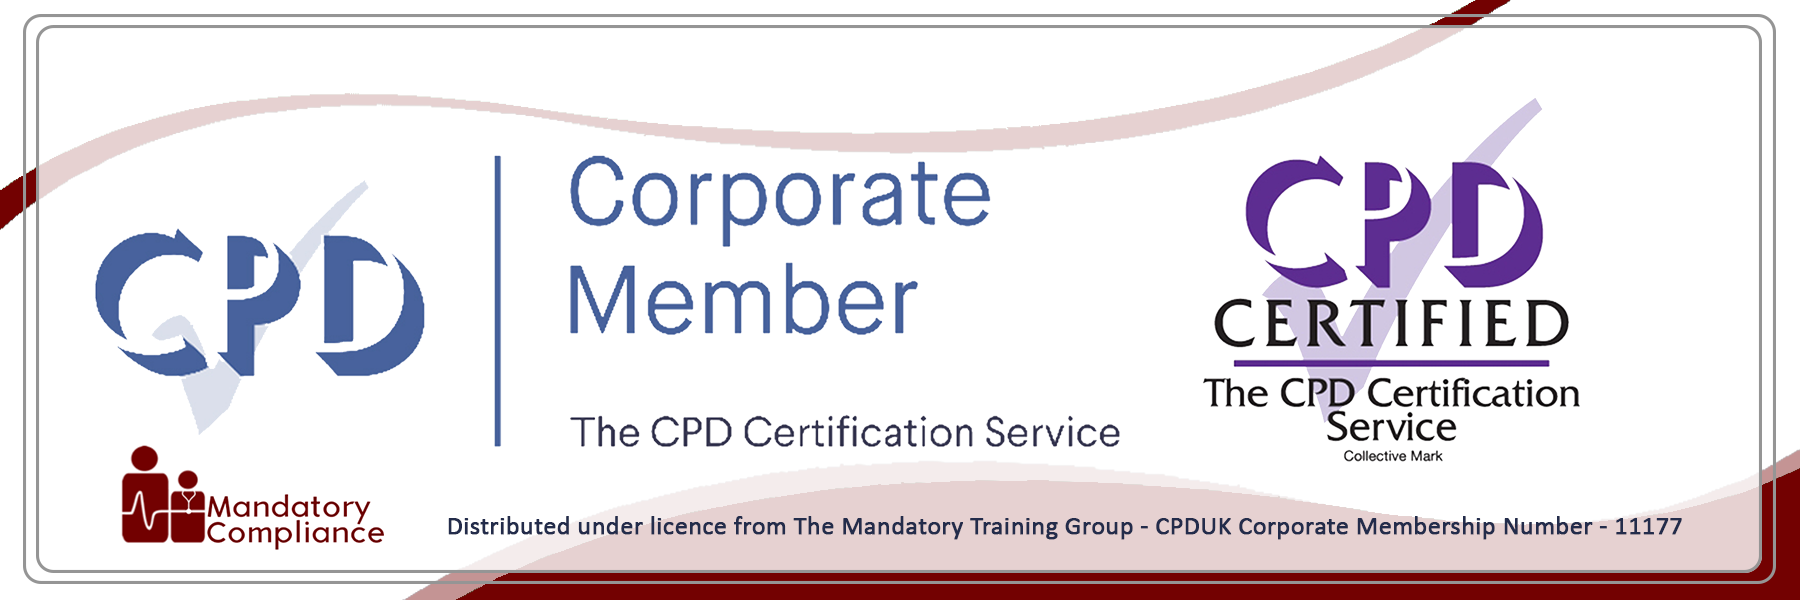 All In One-Day Mandatory Training – 15 Courses - Online Training Courses - CPDUK Accredited